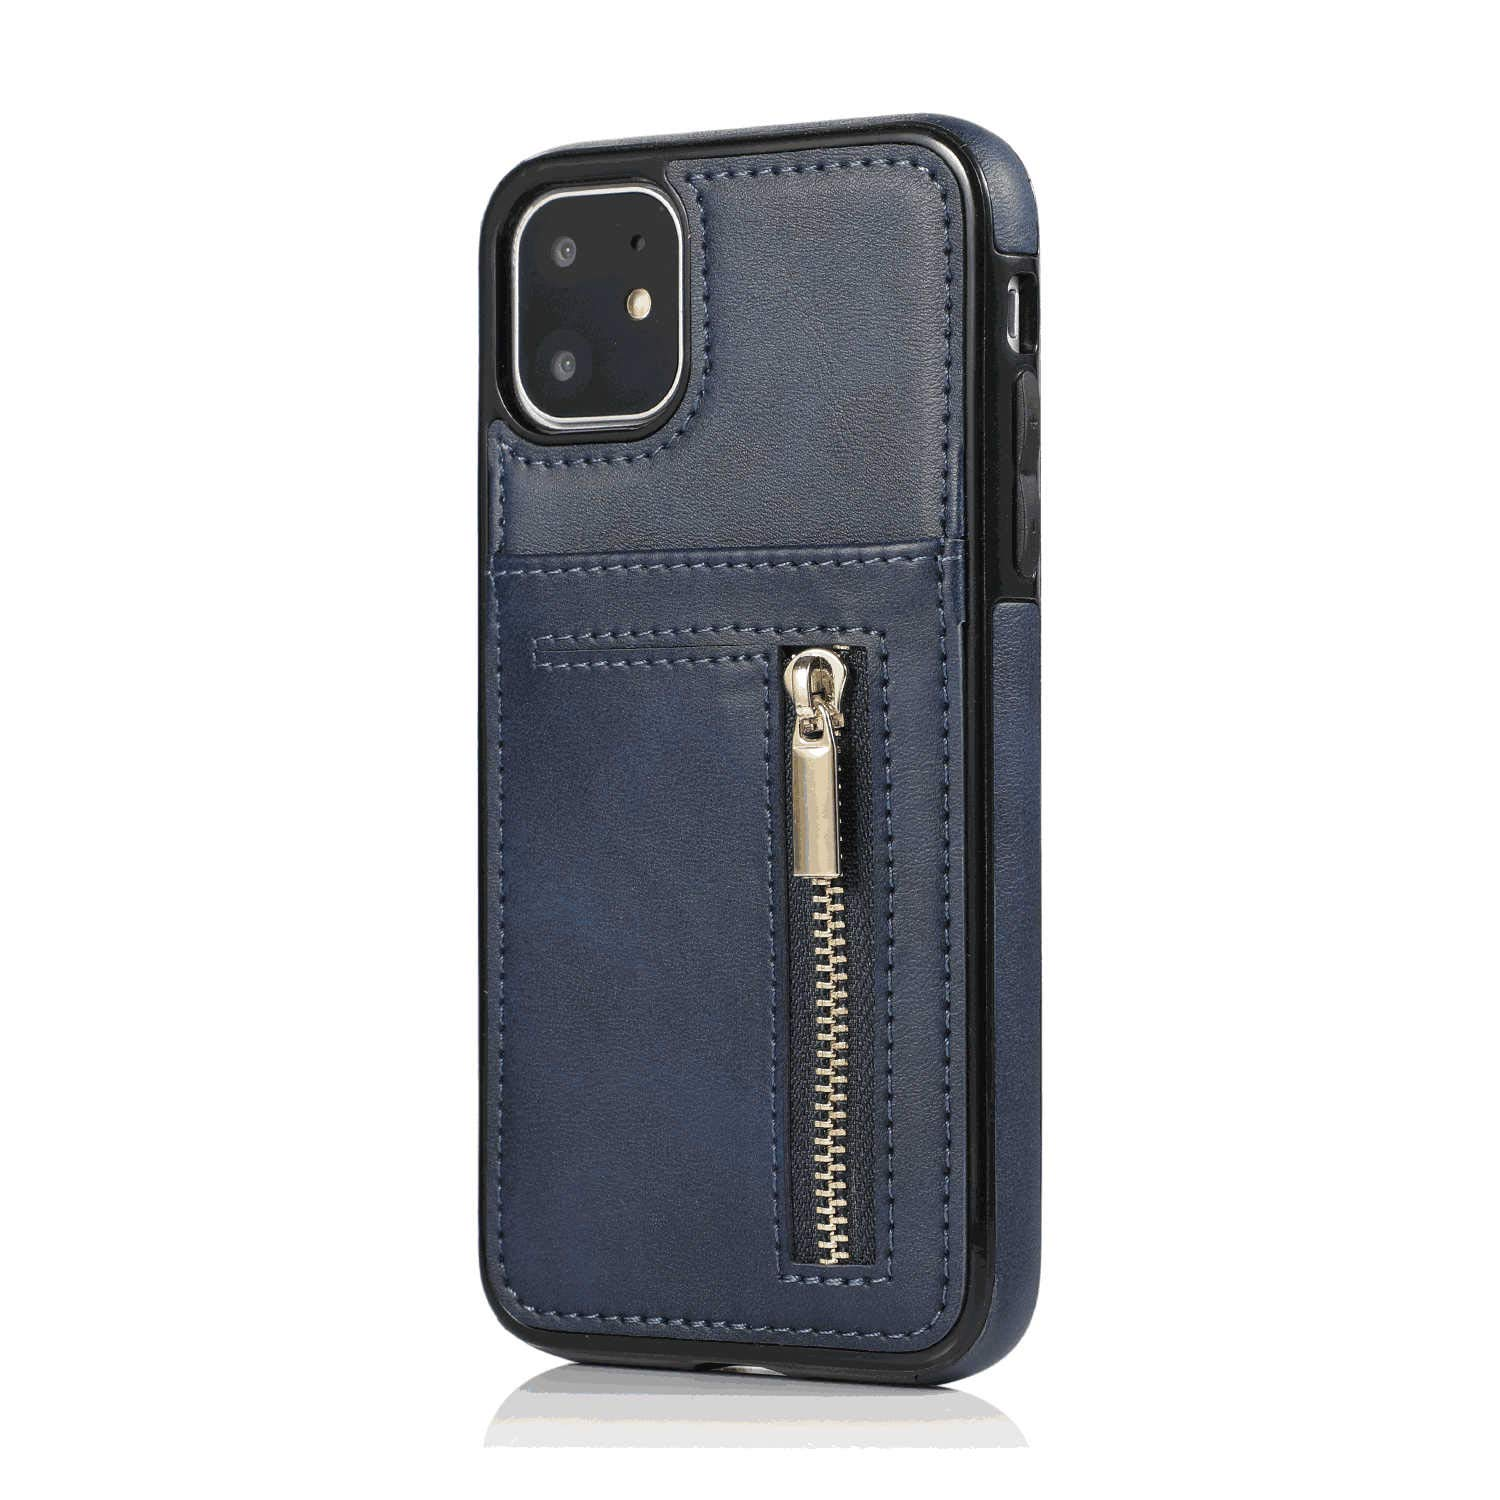 Samsung Galaxy S9 Plus Flip Case Cover for Leather Kickstand Extra-Durable Business Wallet case Card Holders Flip Cover